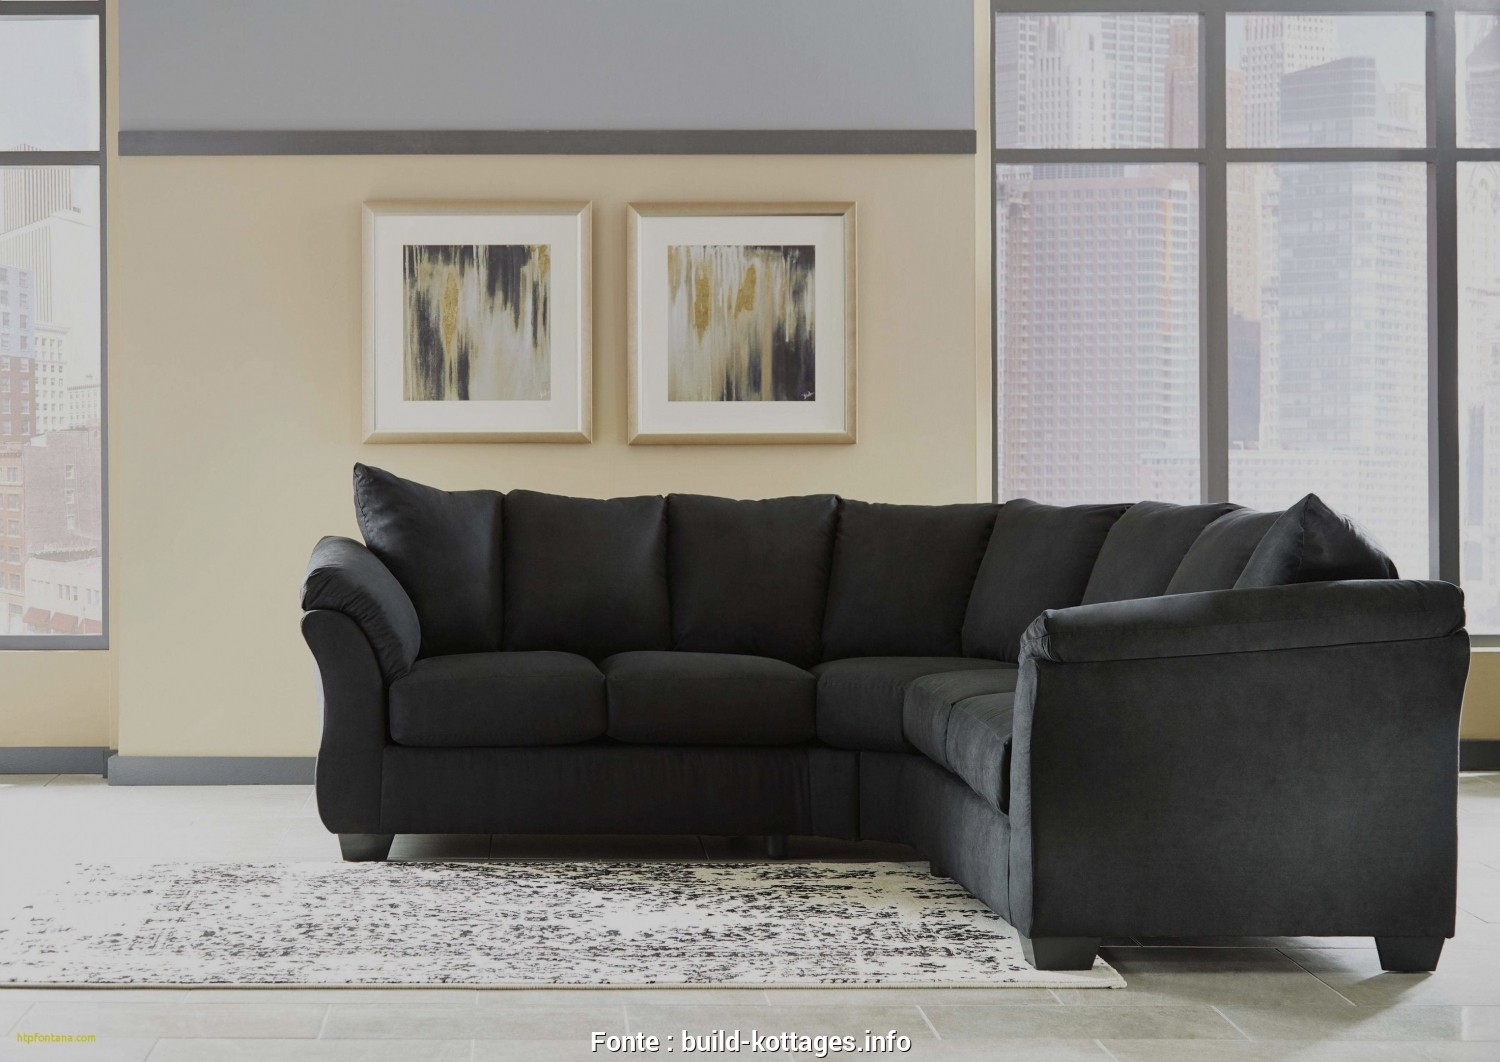 Ikea Backabro Zusammenbauen, Ideale Couch, Sofa Fresh Living Room Ideas Using Grey Luxury With Sectional Sofas Couch 0D